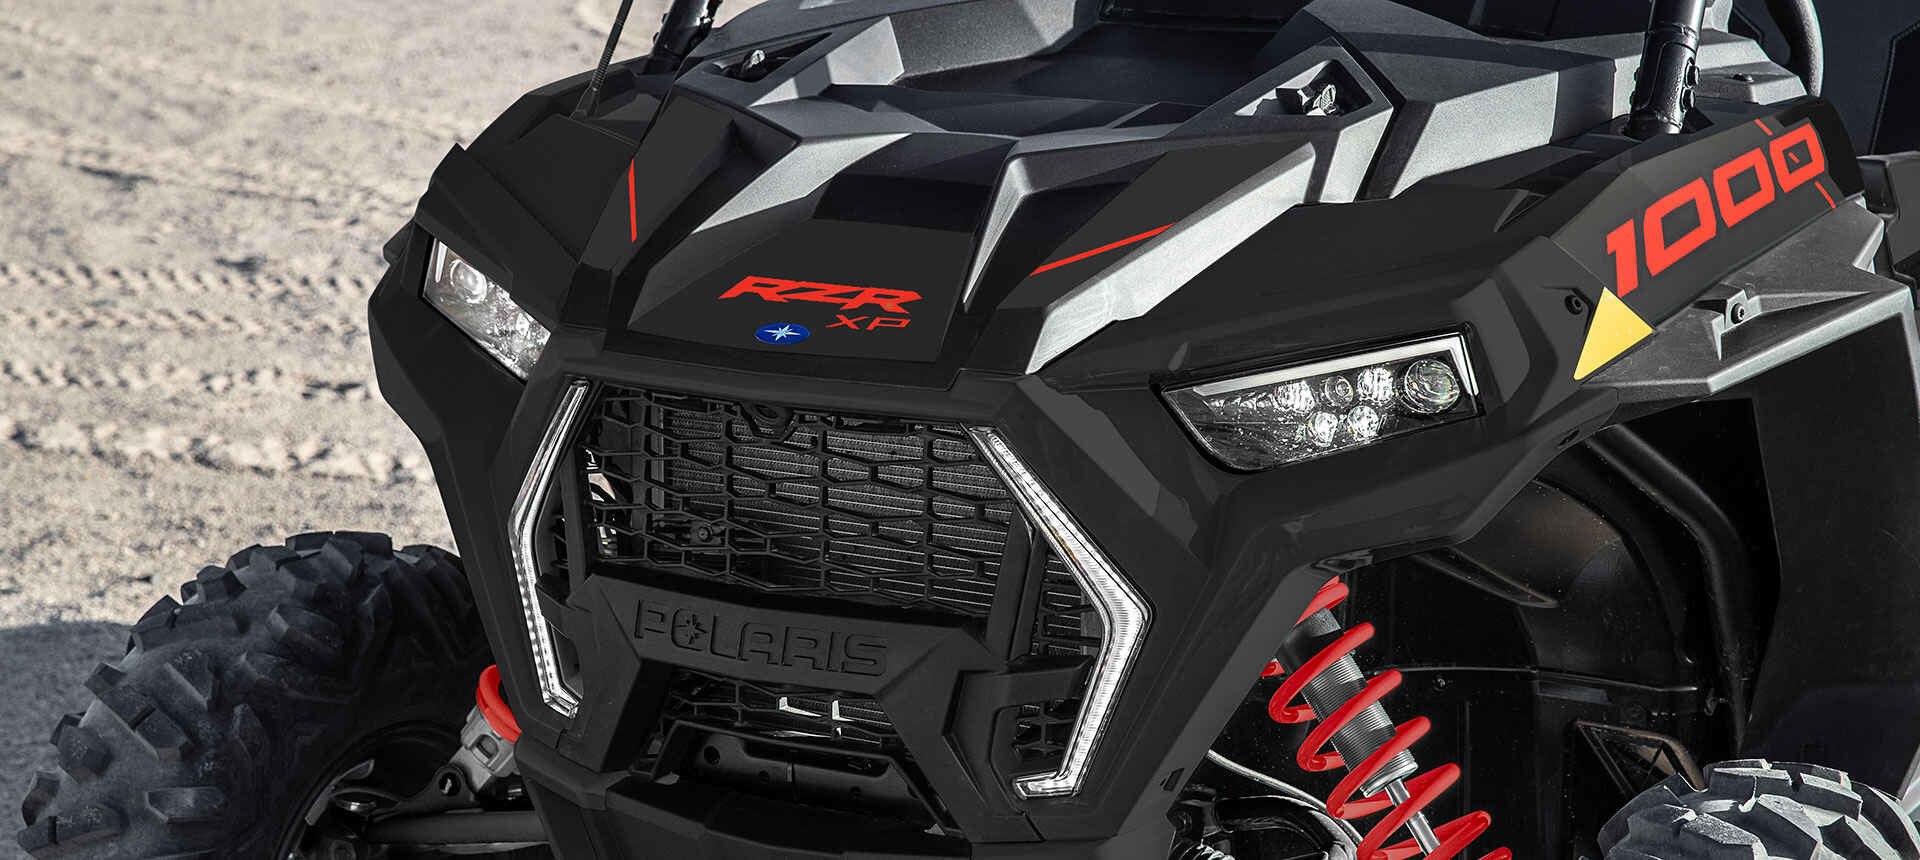 2020 RZR® XP 4 1000 Limited Edition Instagram image 12